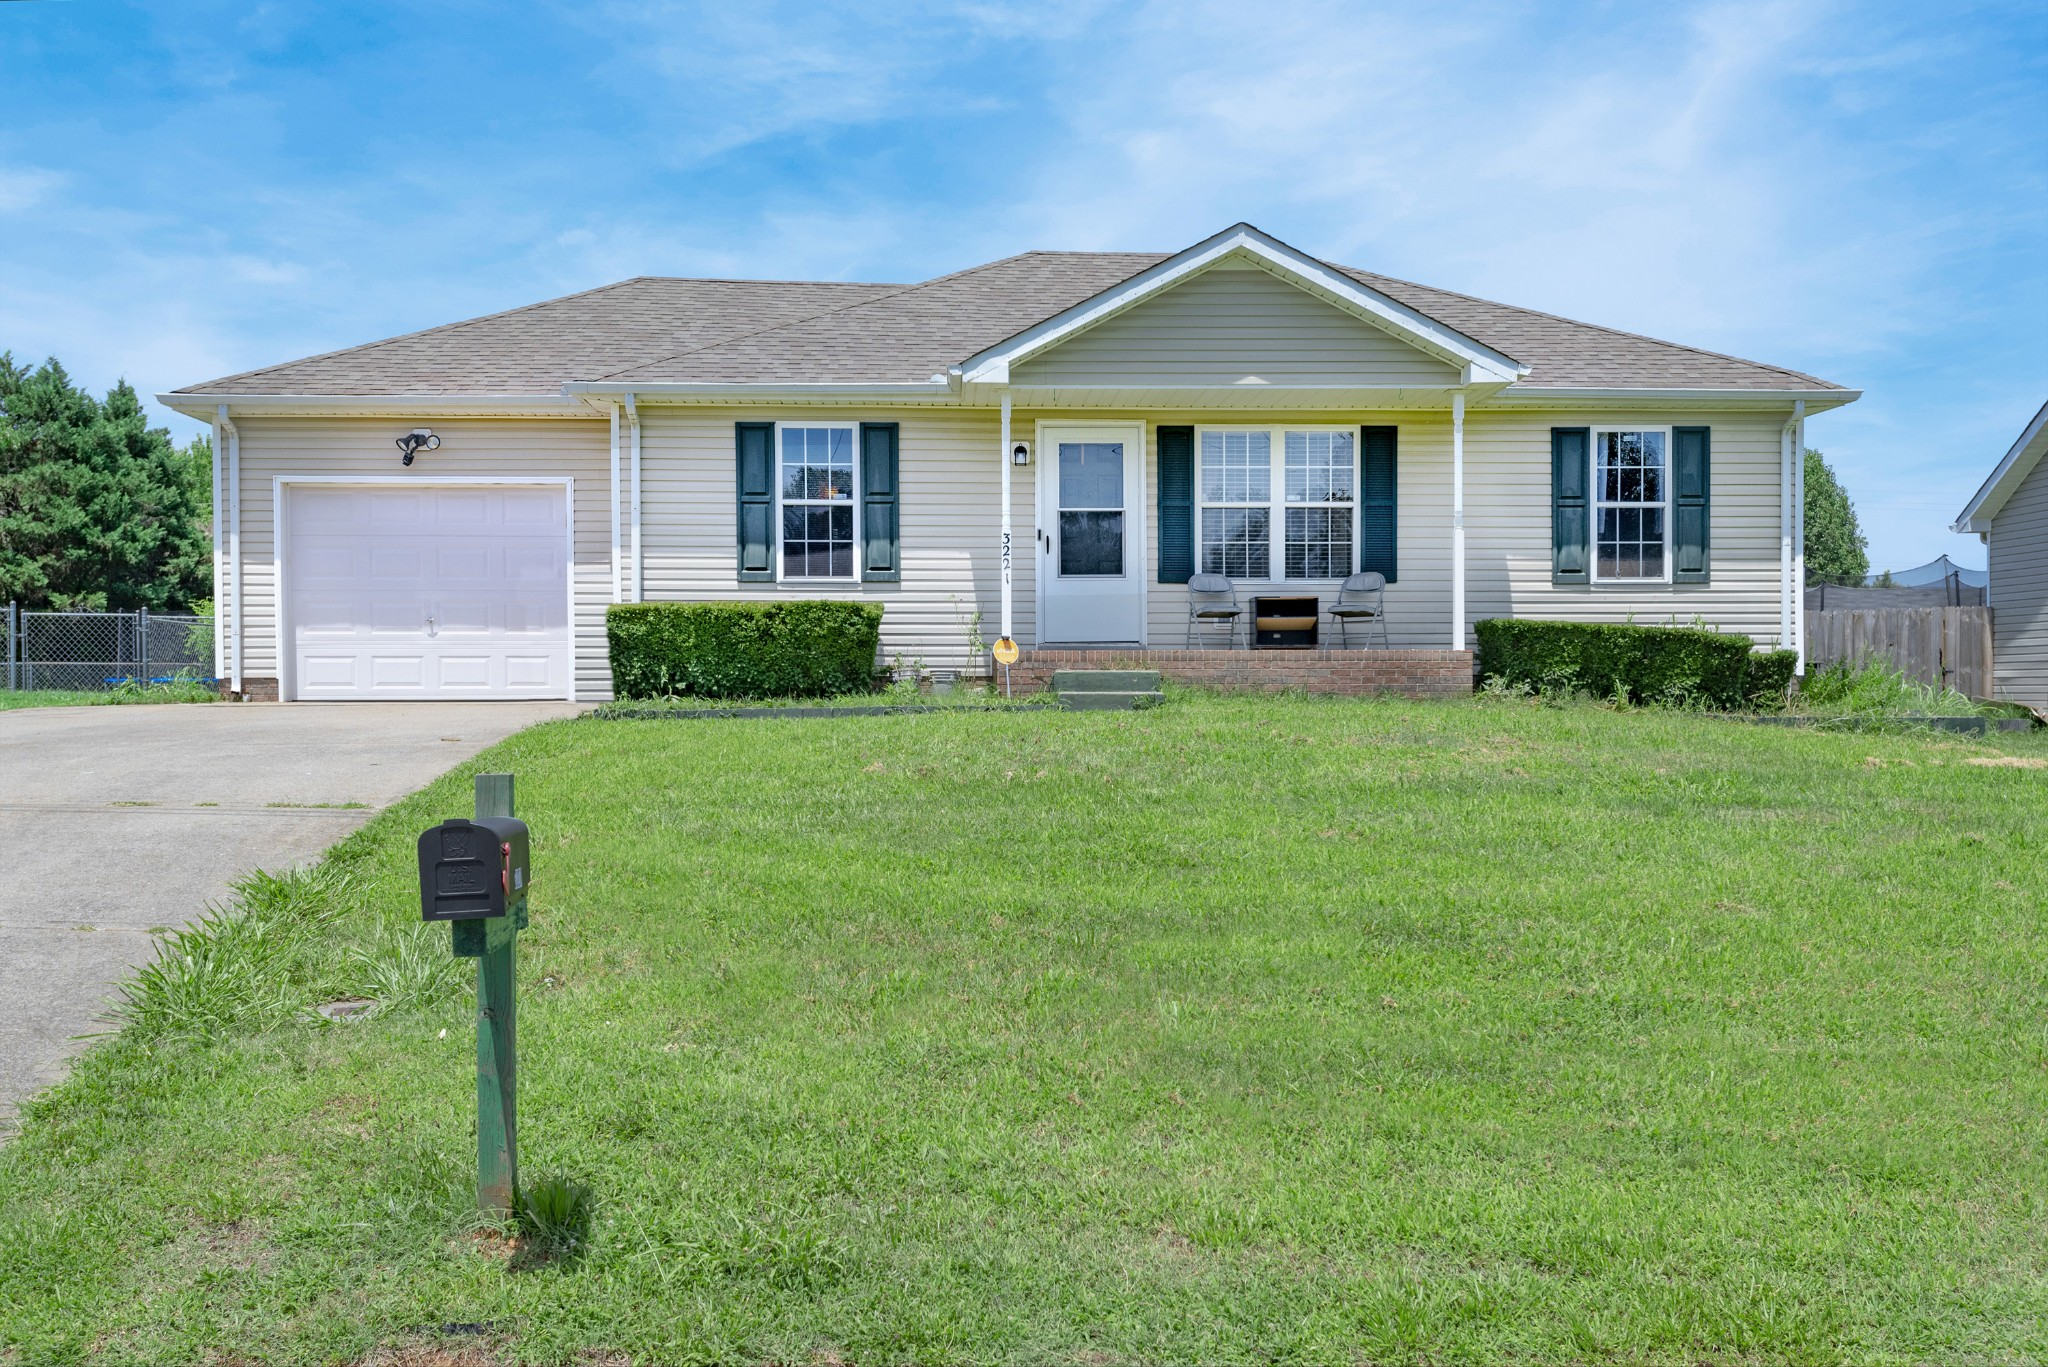 3221 Tabby Dr Property Photo - Clarksville, TN real estate listing